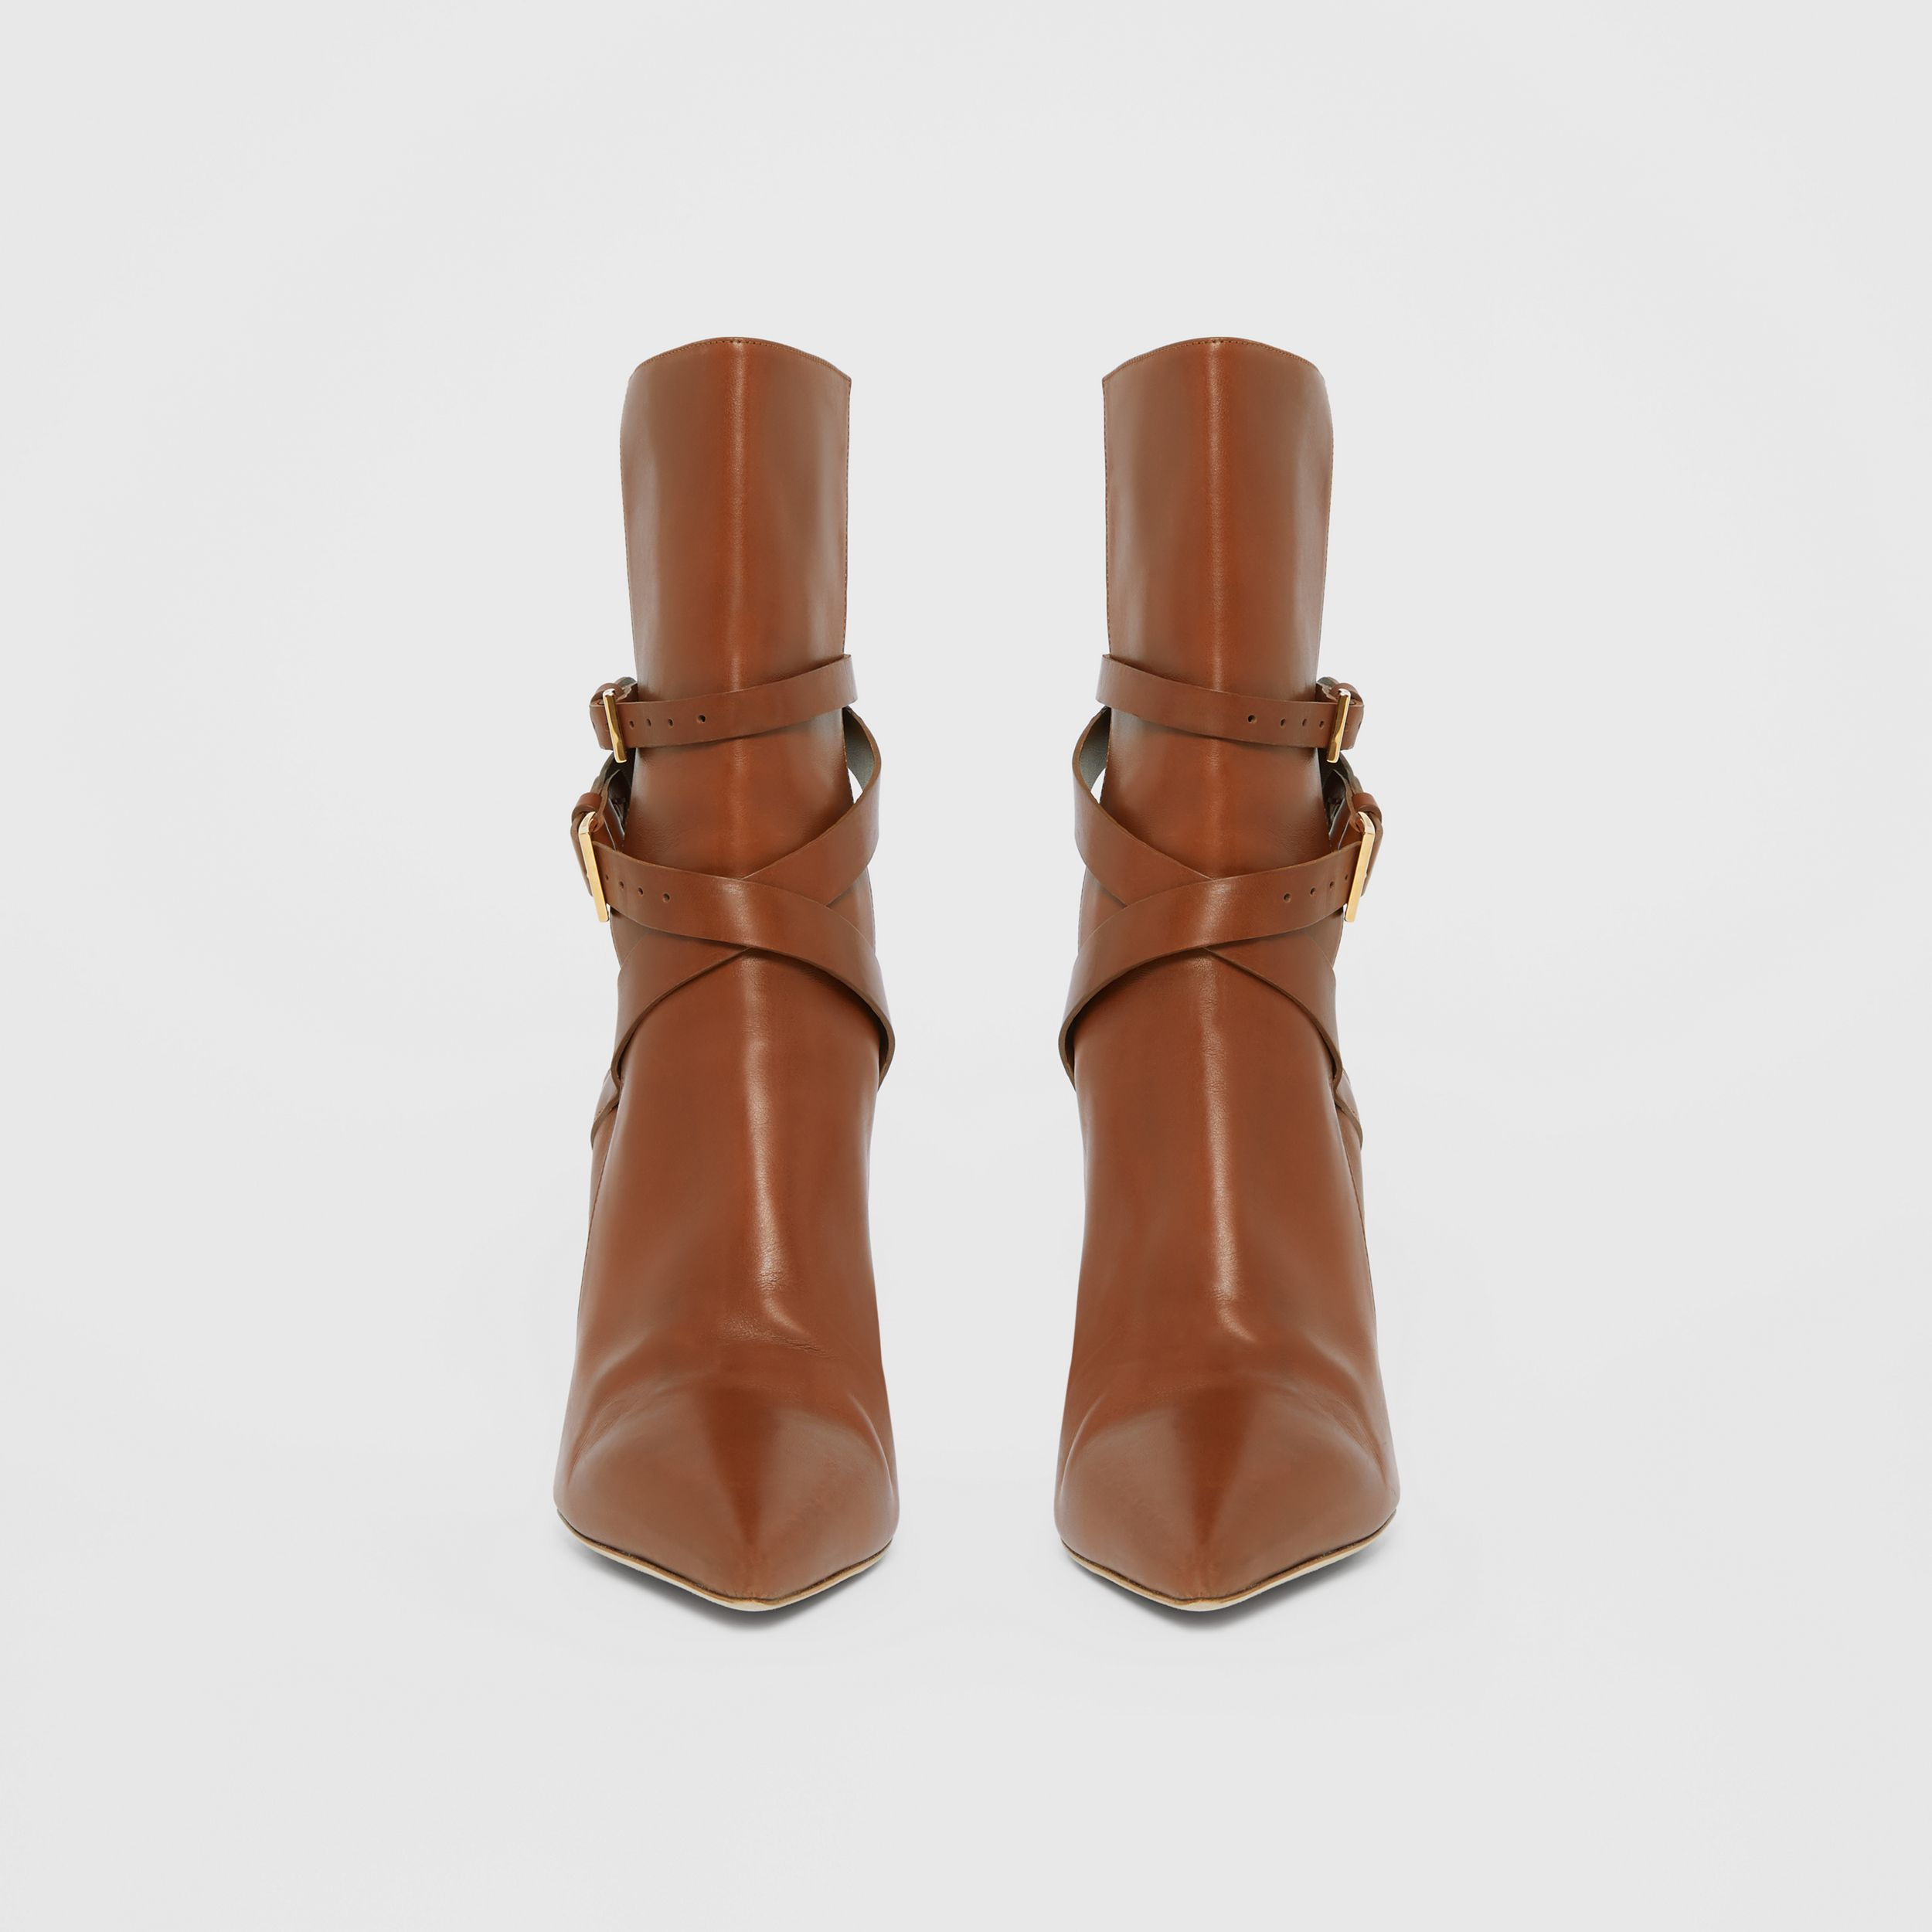 Strap Detail Leather Ankle Boots in Tan - Women | Burberry - 4